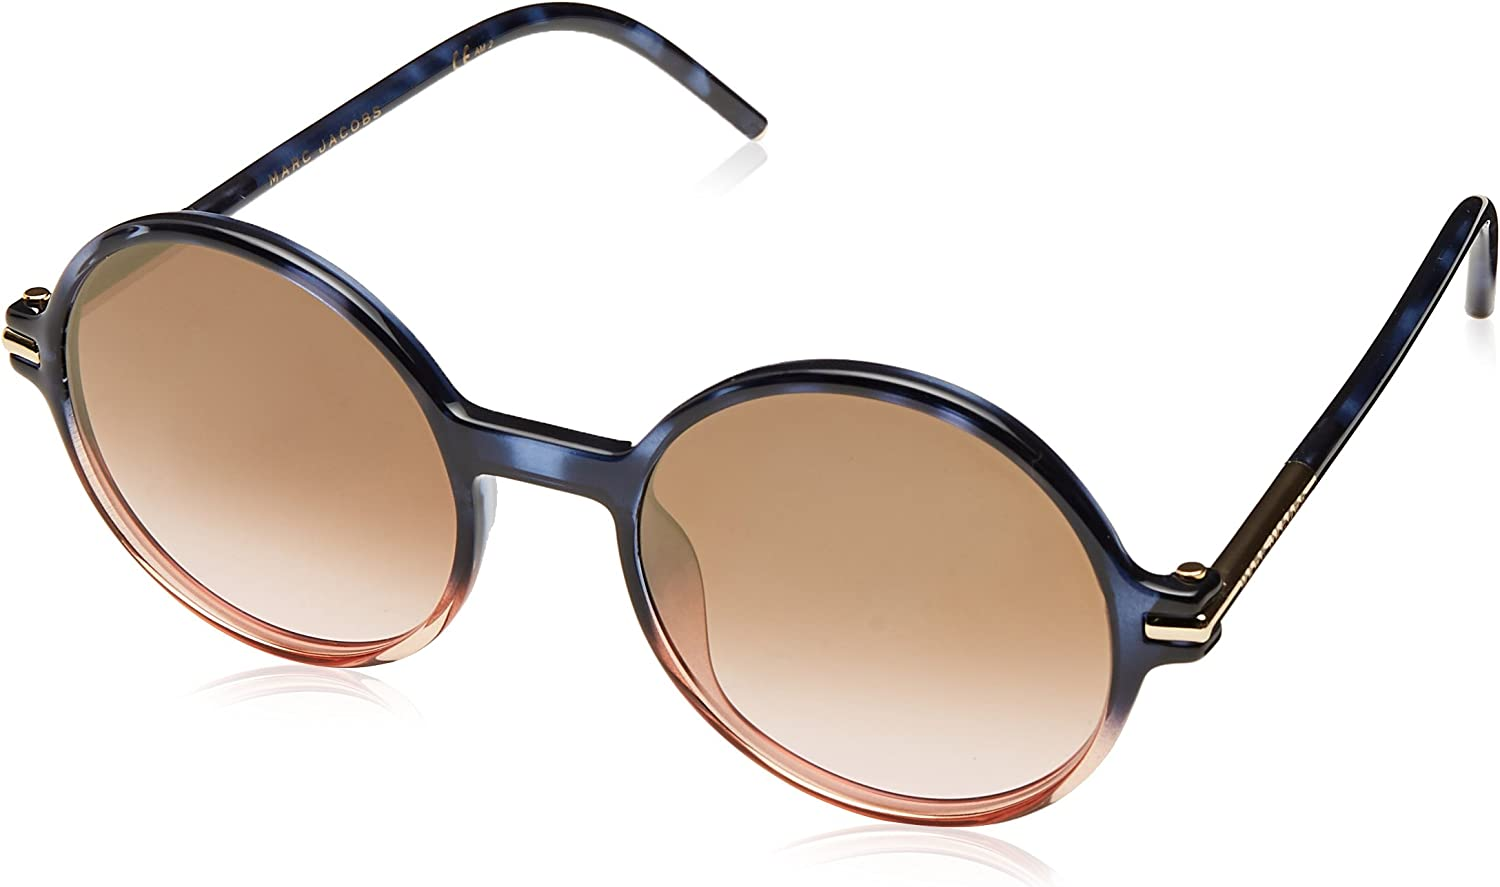 Marc Jacobs Women's Perfectly Round Sunglasses